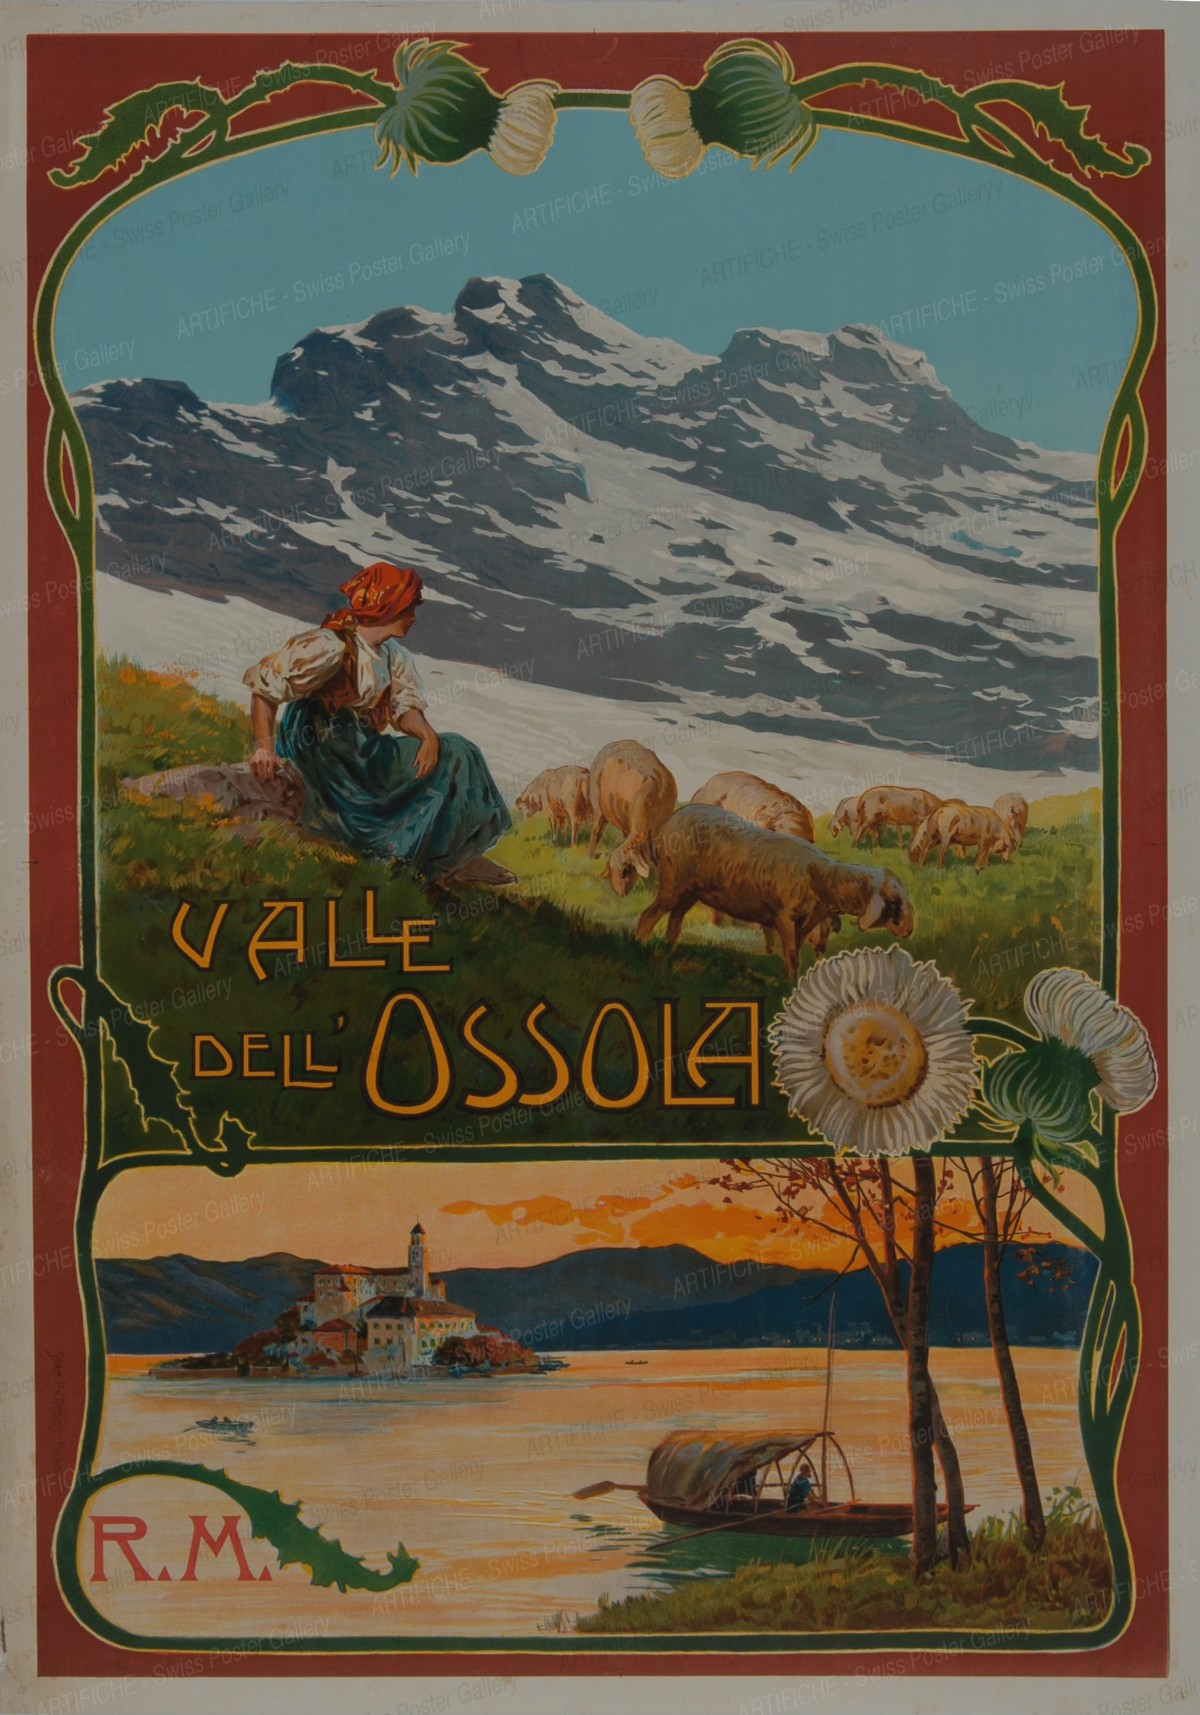 VALLE DELL OSSOLA, R.M., Artist unknown